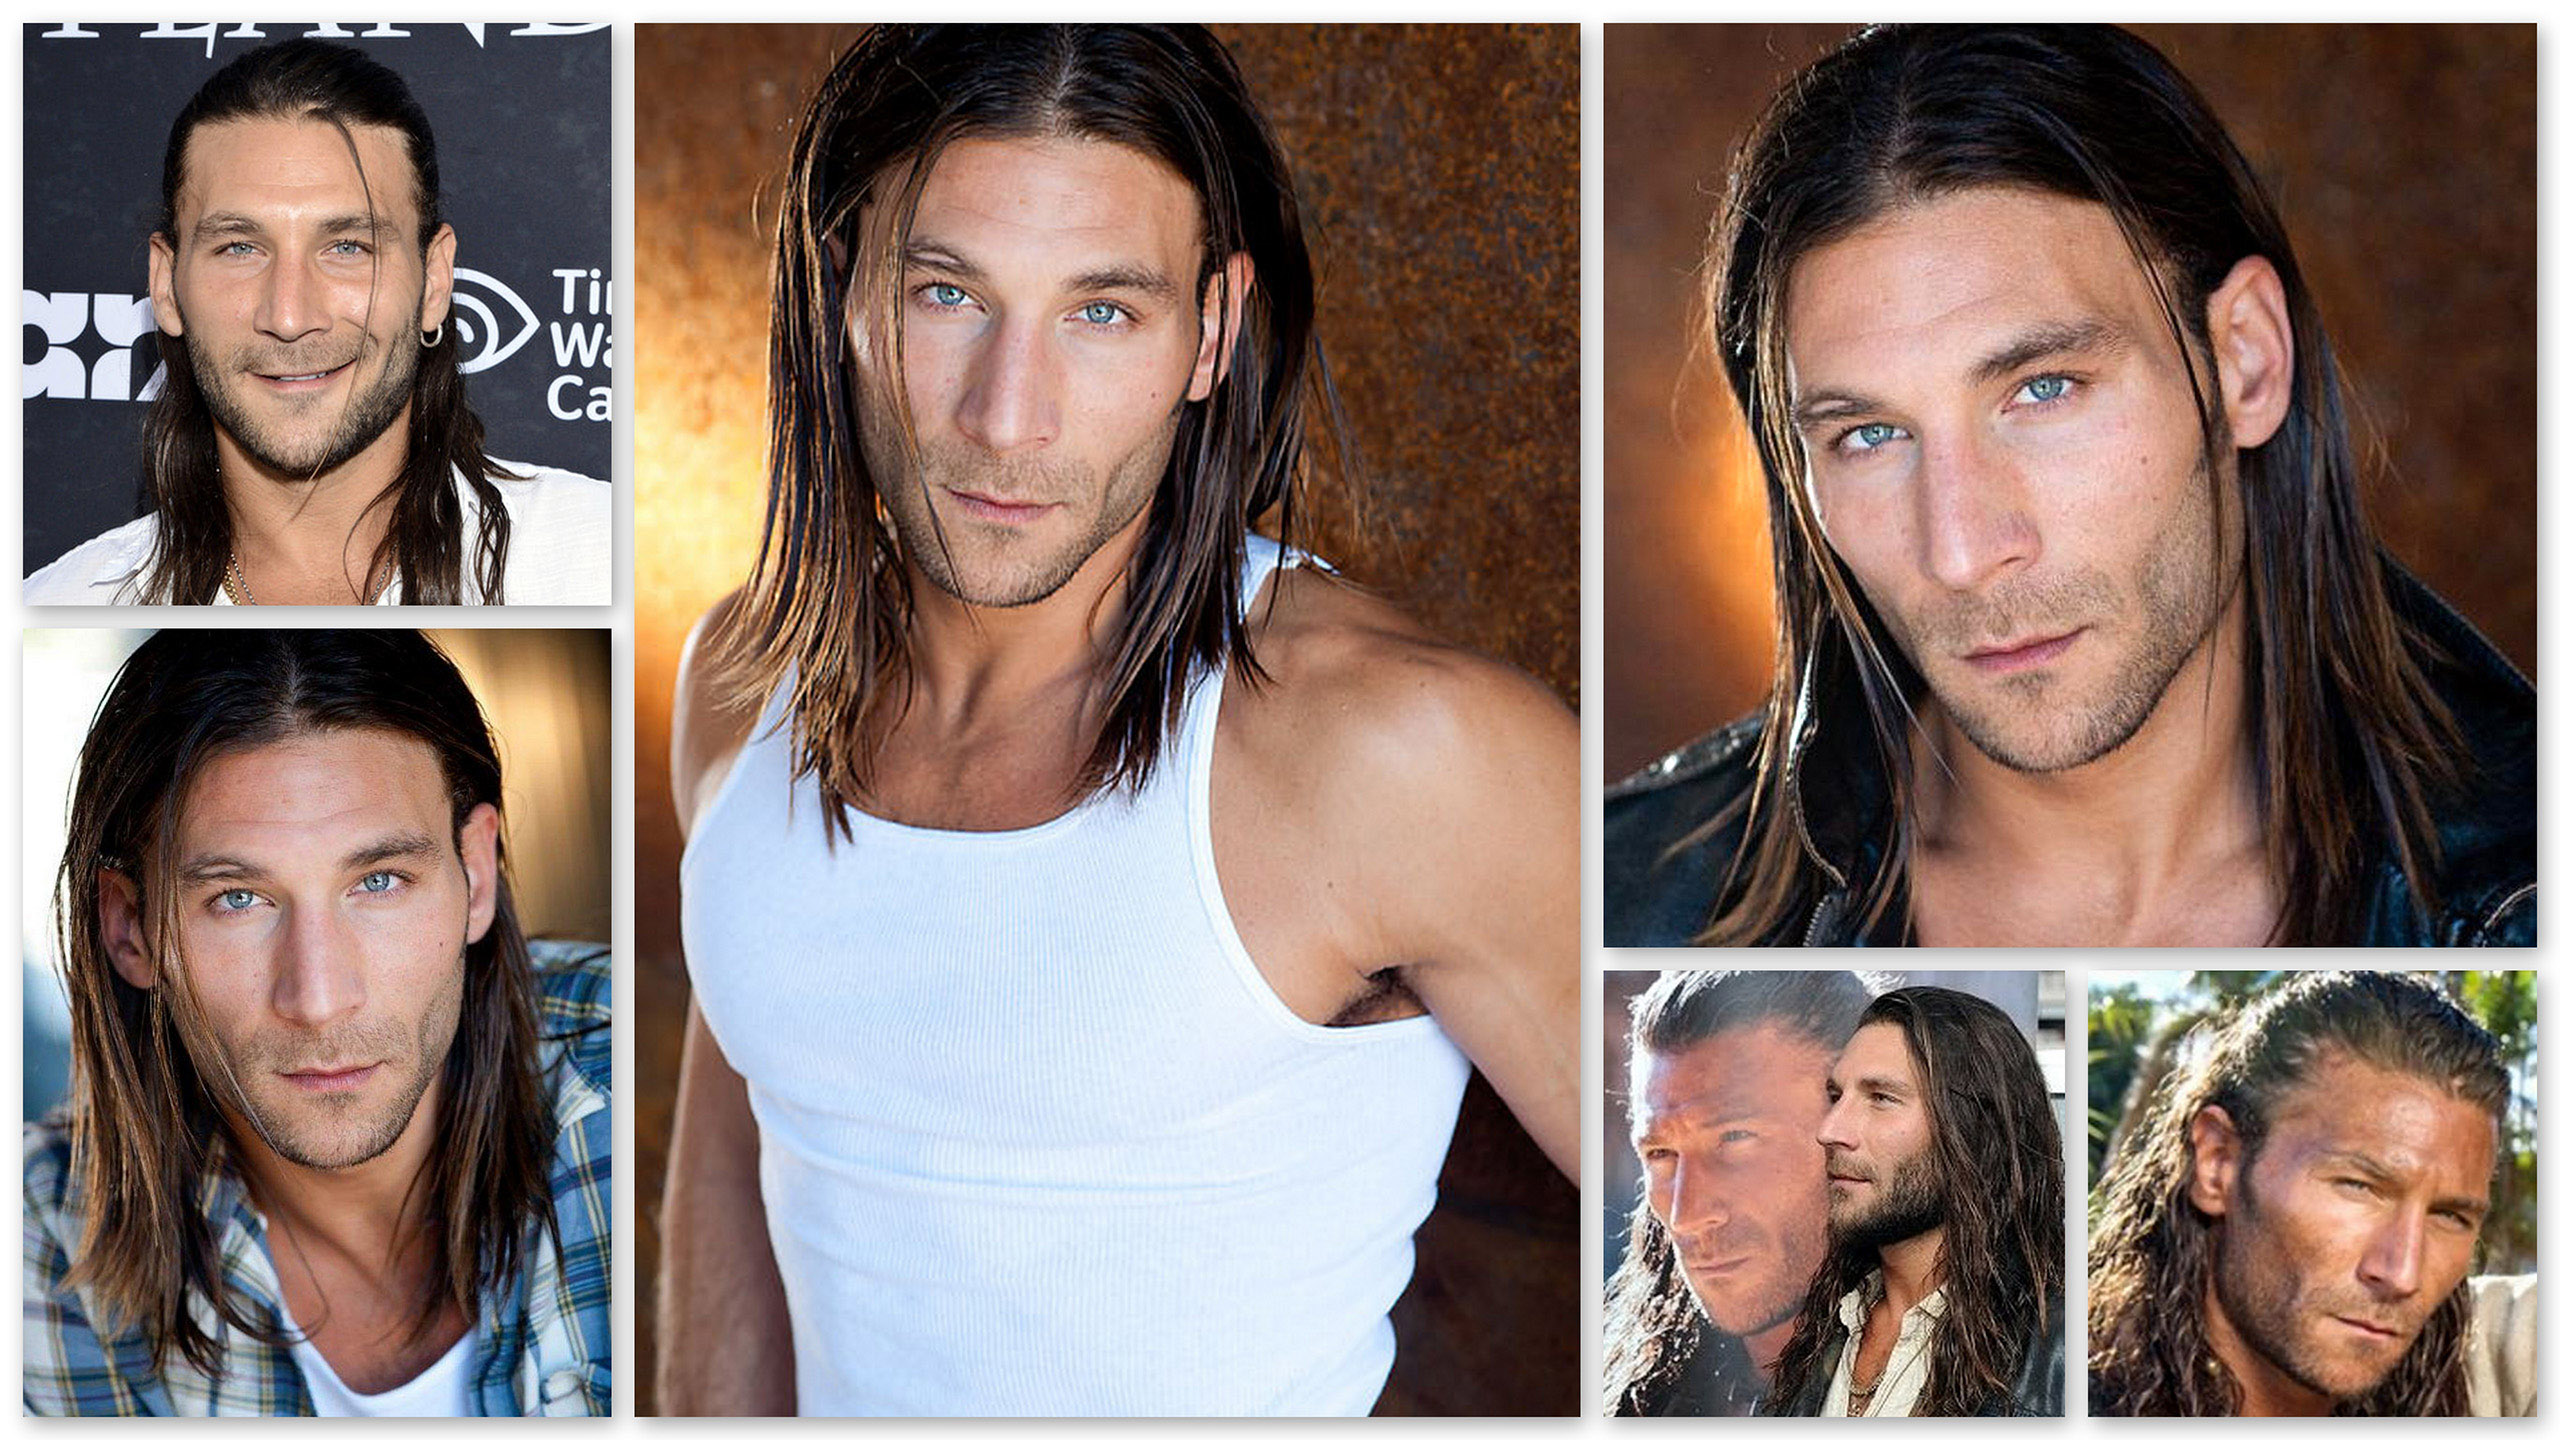 zach mcgowan emily johnson